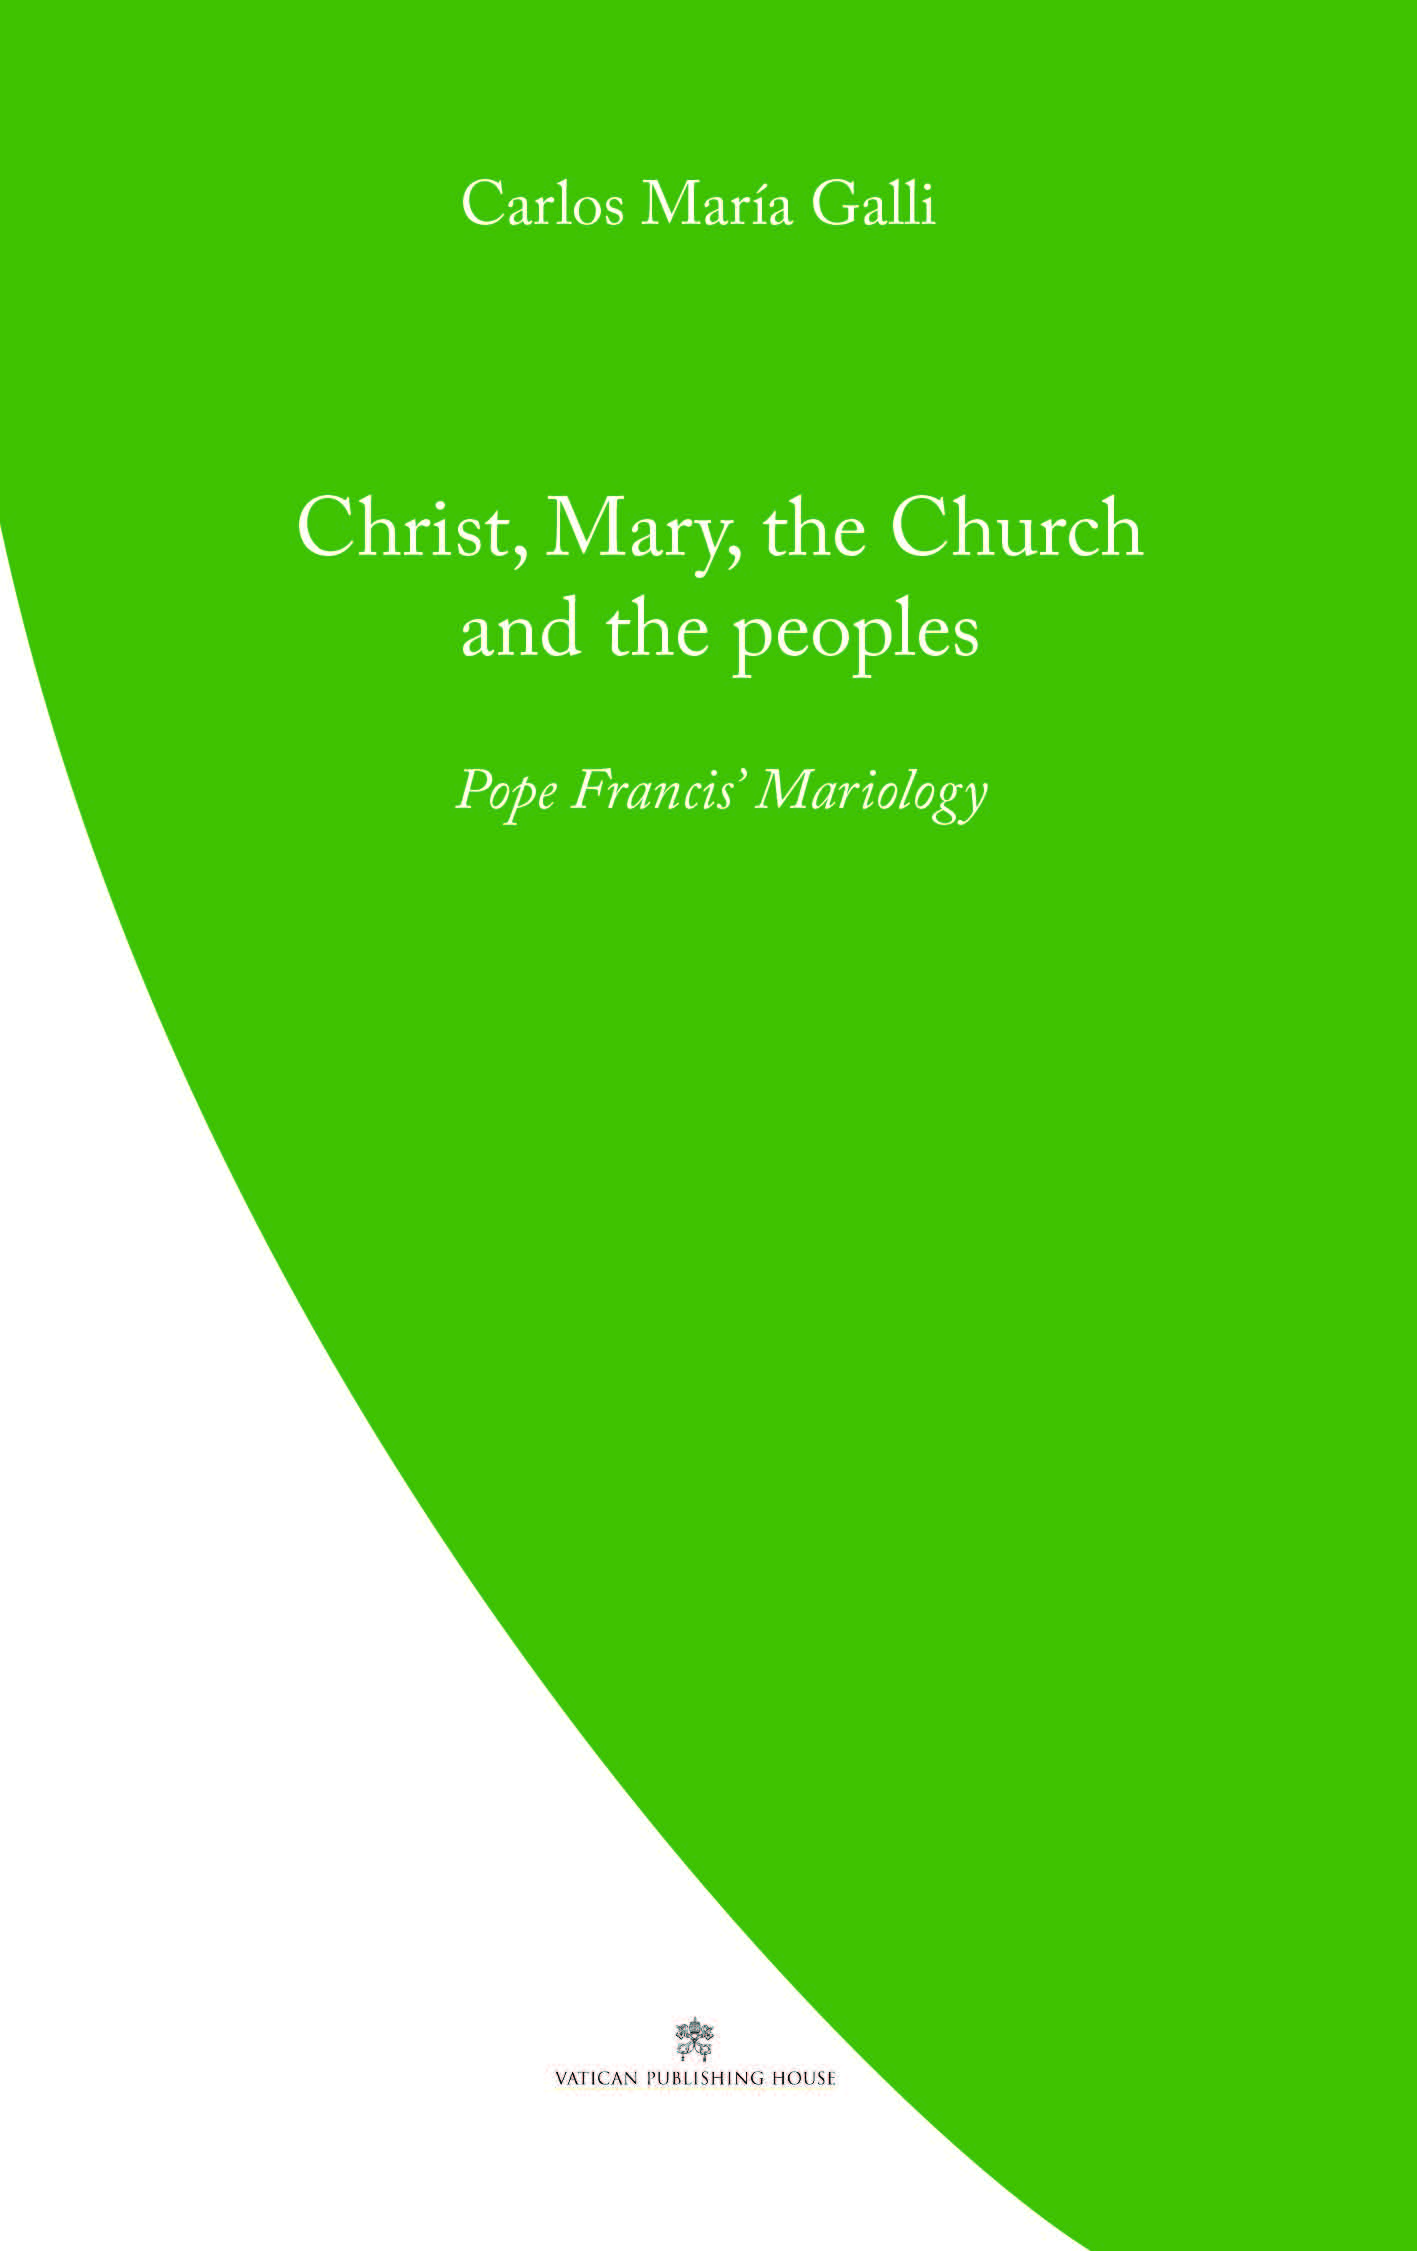 Christ, Mary, the Church and the Peoples  Pope Francis' Mariology / Carlos Maria Galli